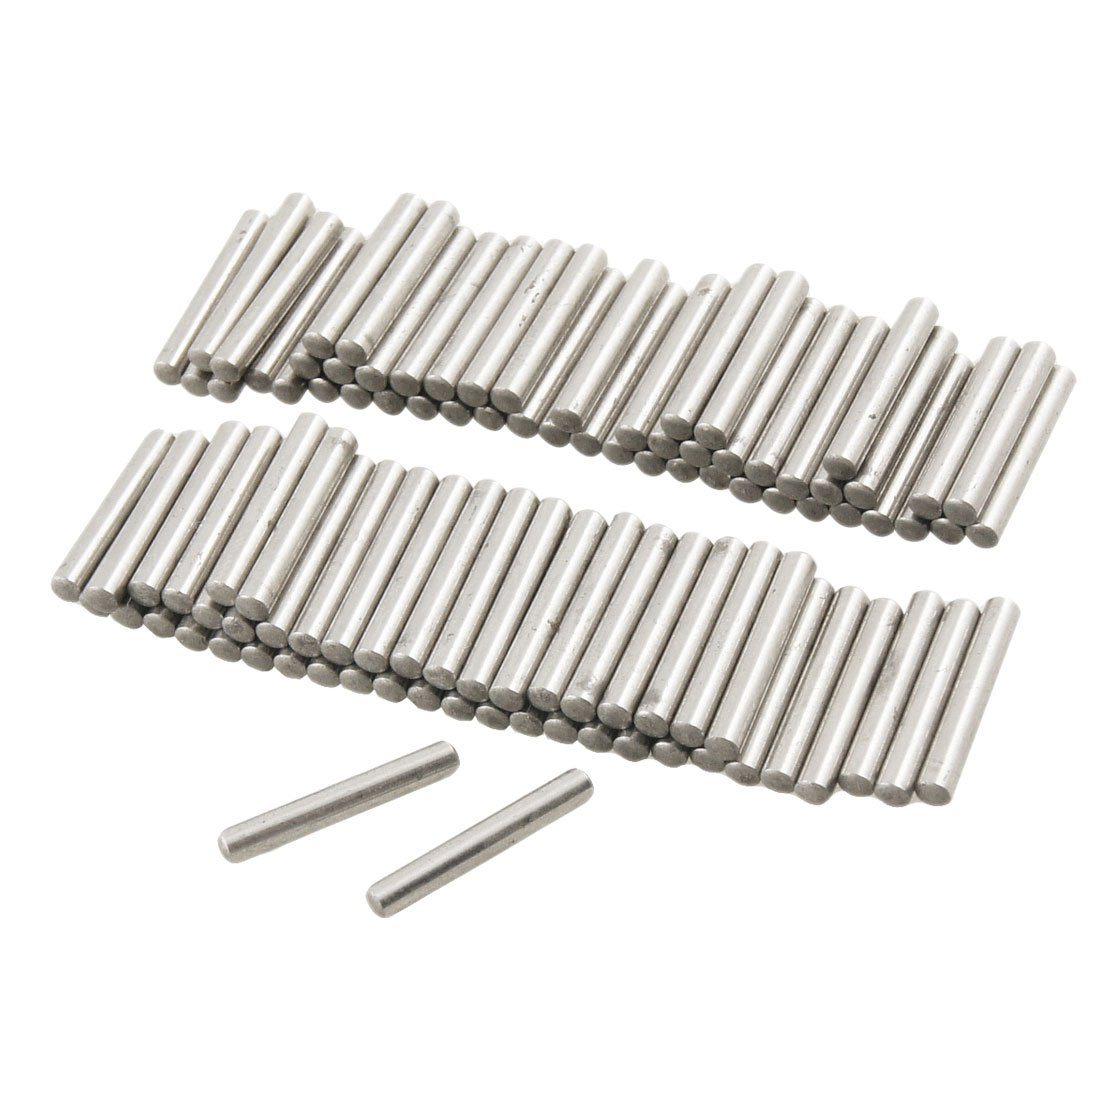 100 Pcs Stainless Steel 2.6mm x 15.8mm Dowel Pins Fasten Elements Sourcingmap TRTAXCEEGF3565